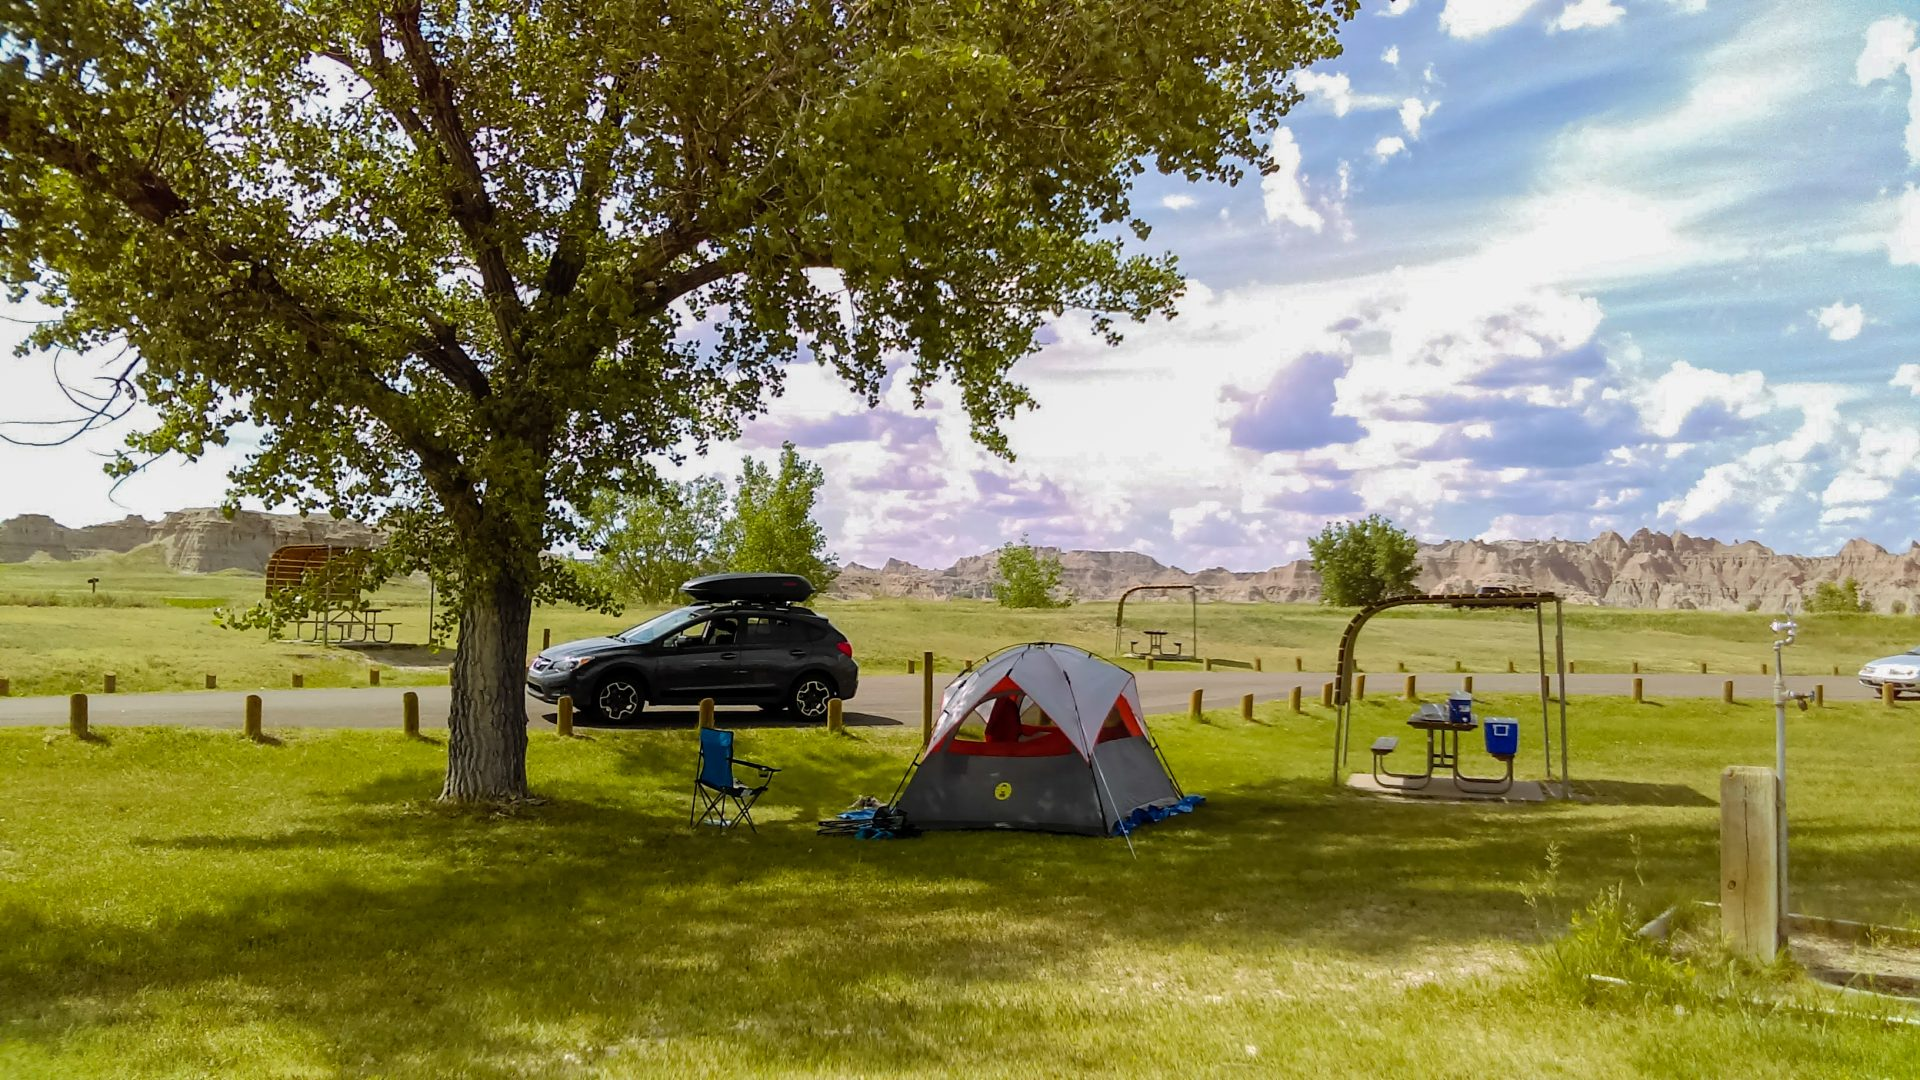 What to Pack for a Camping Trip with a Toddler